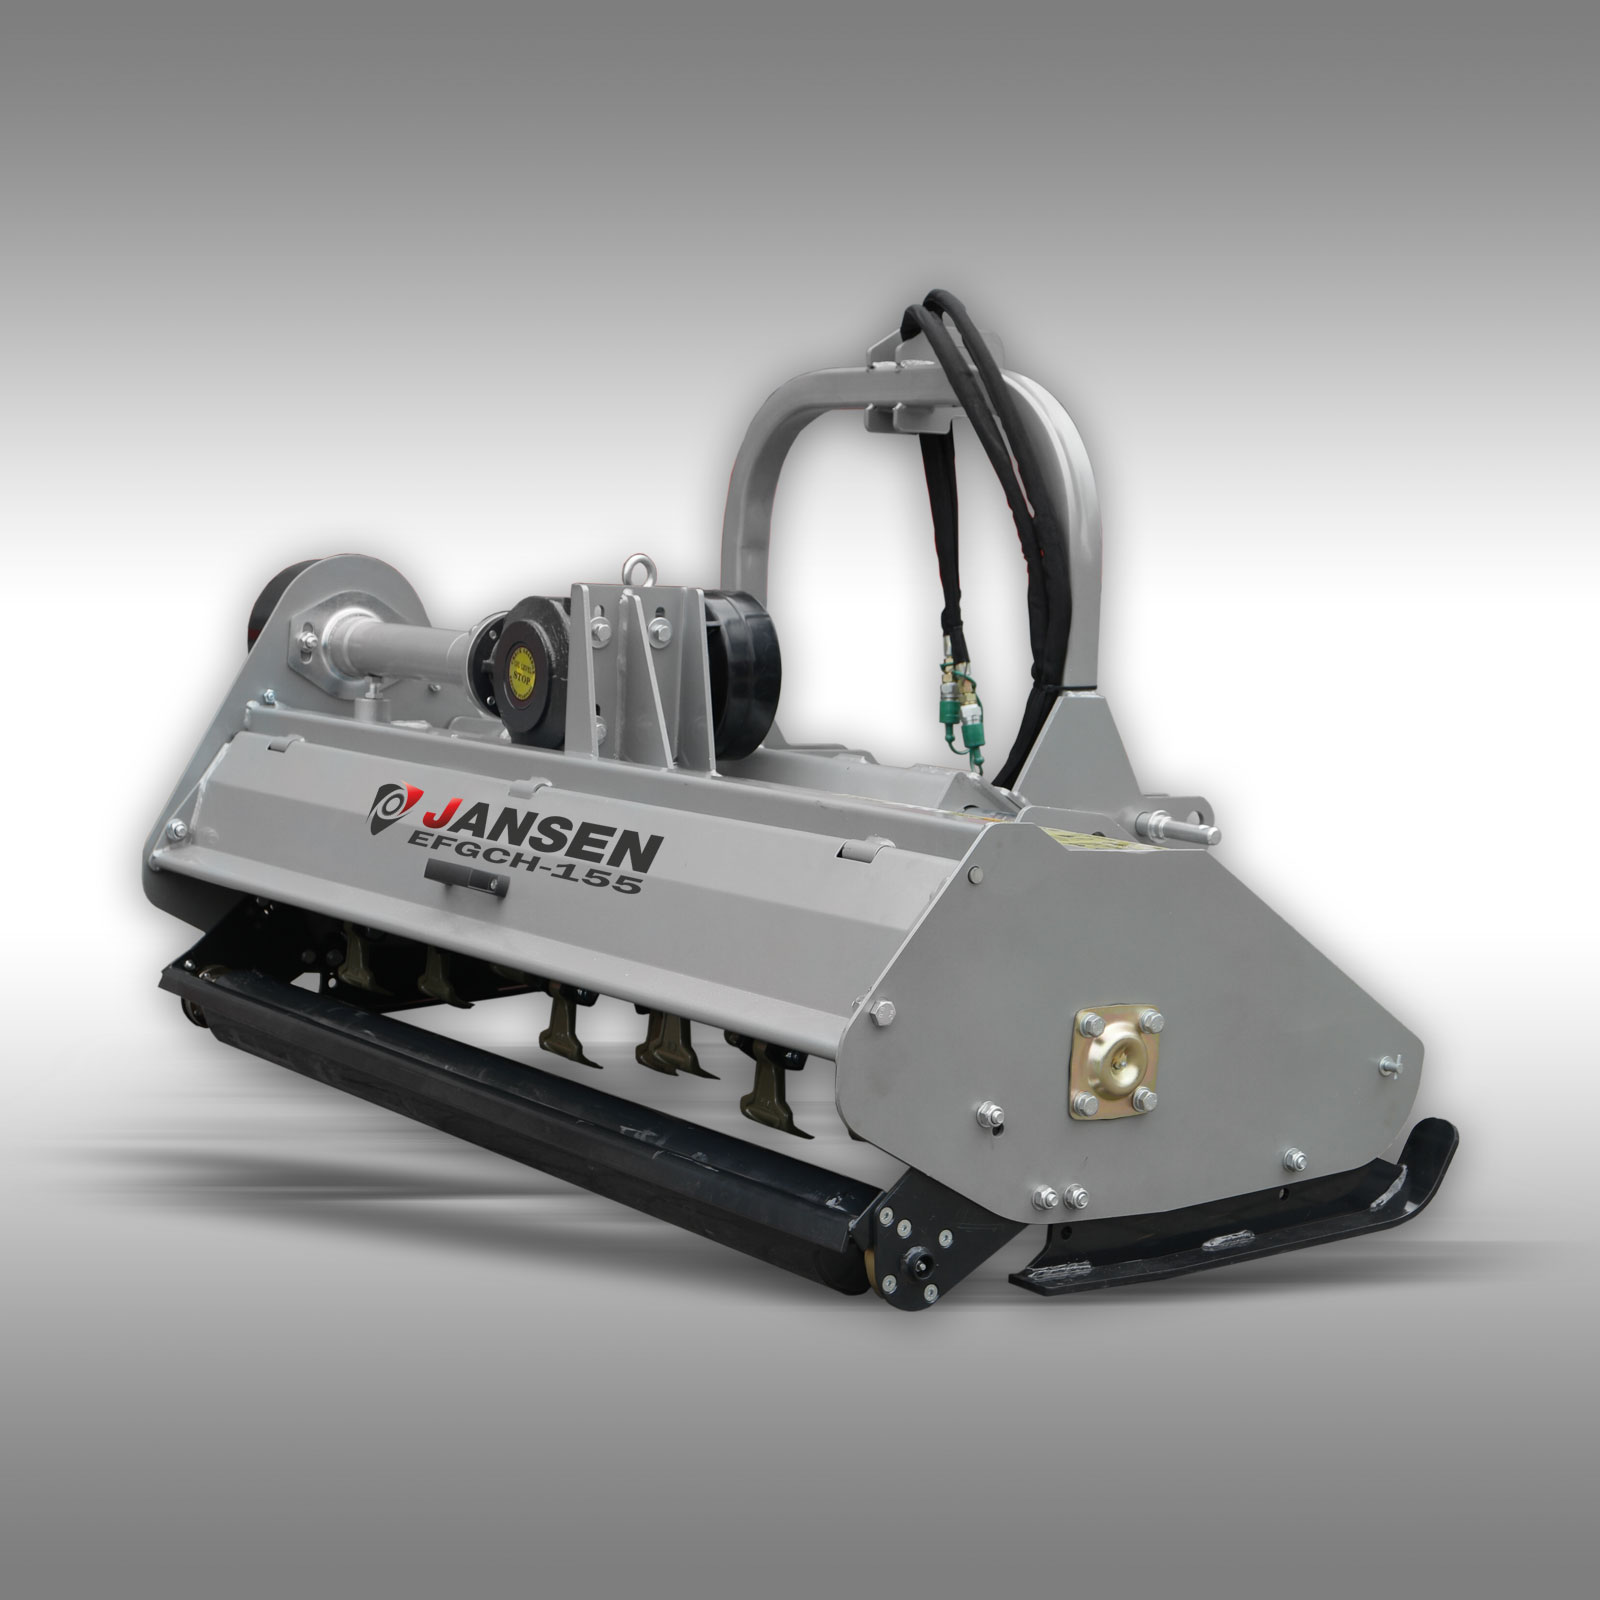 jansen-155m-hydraulic-side-shift-flail-mower